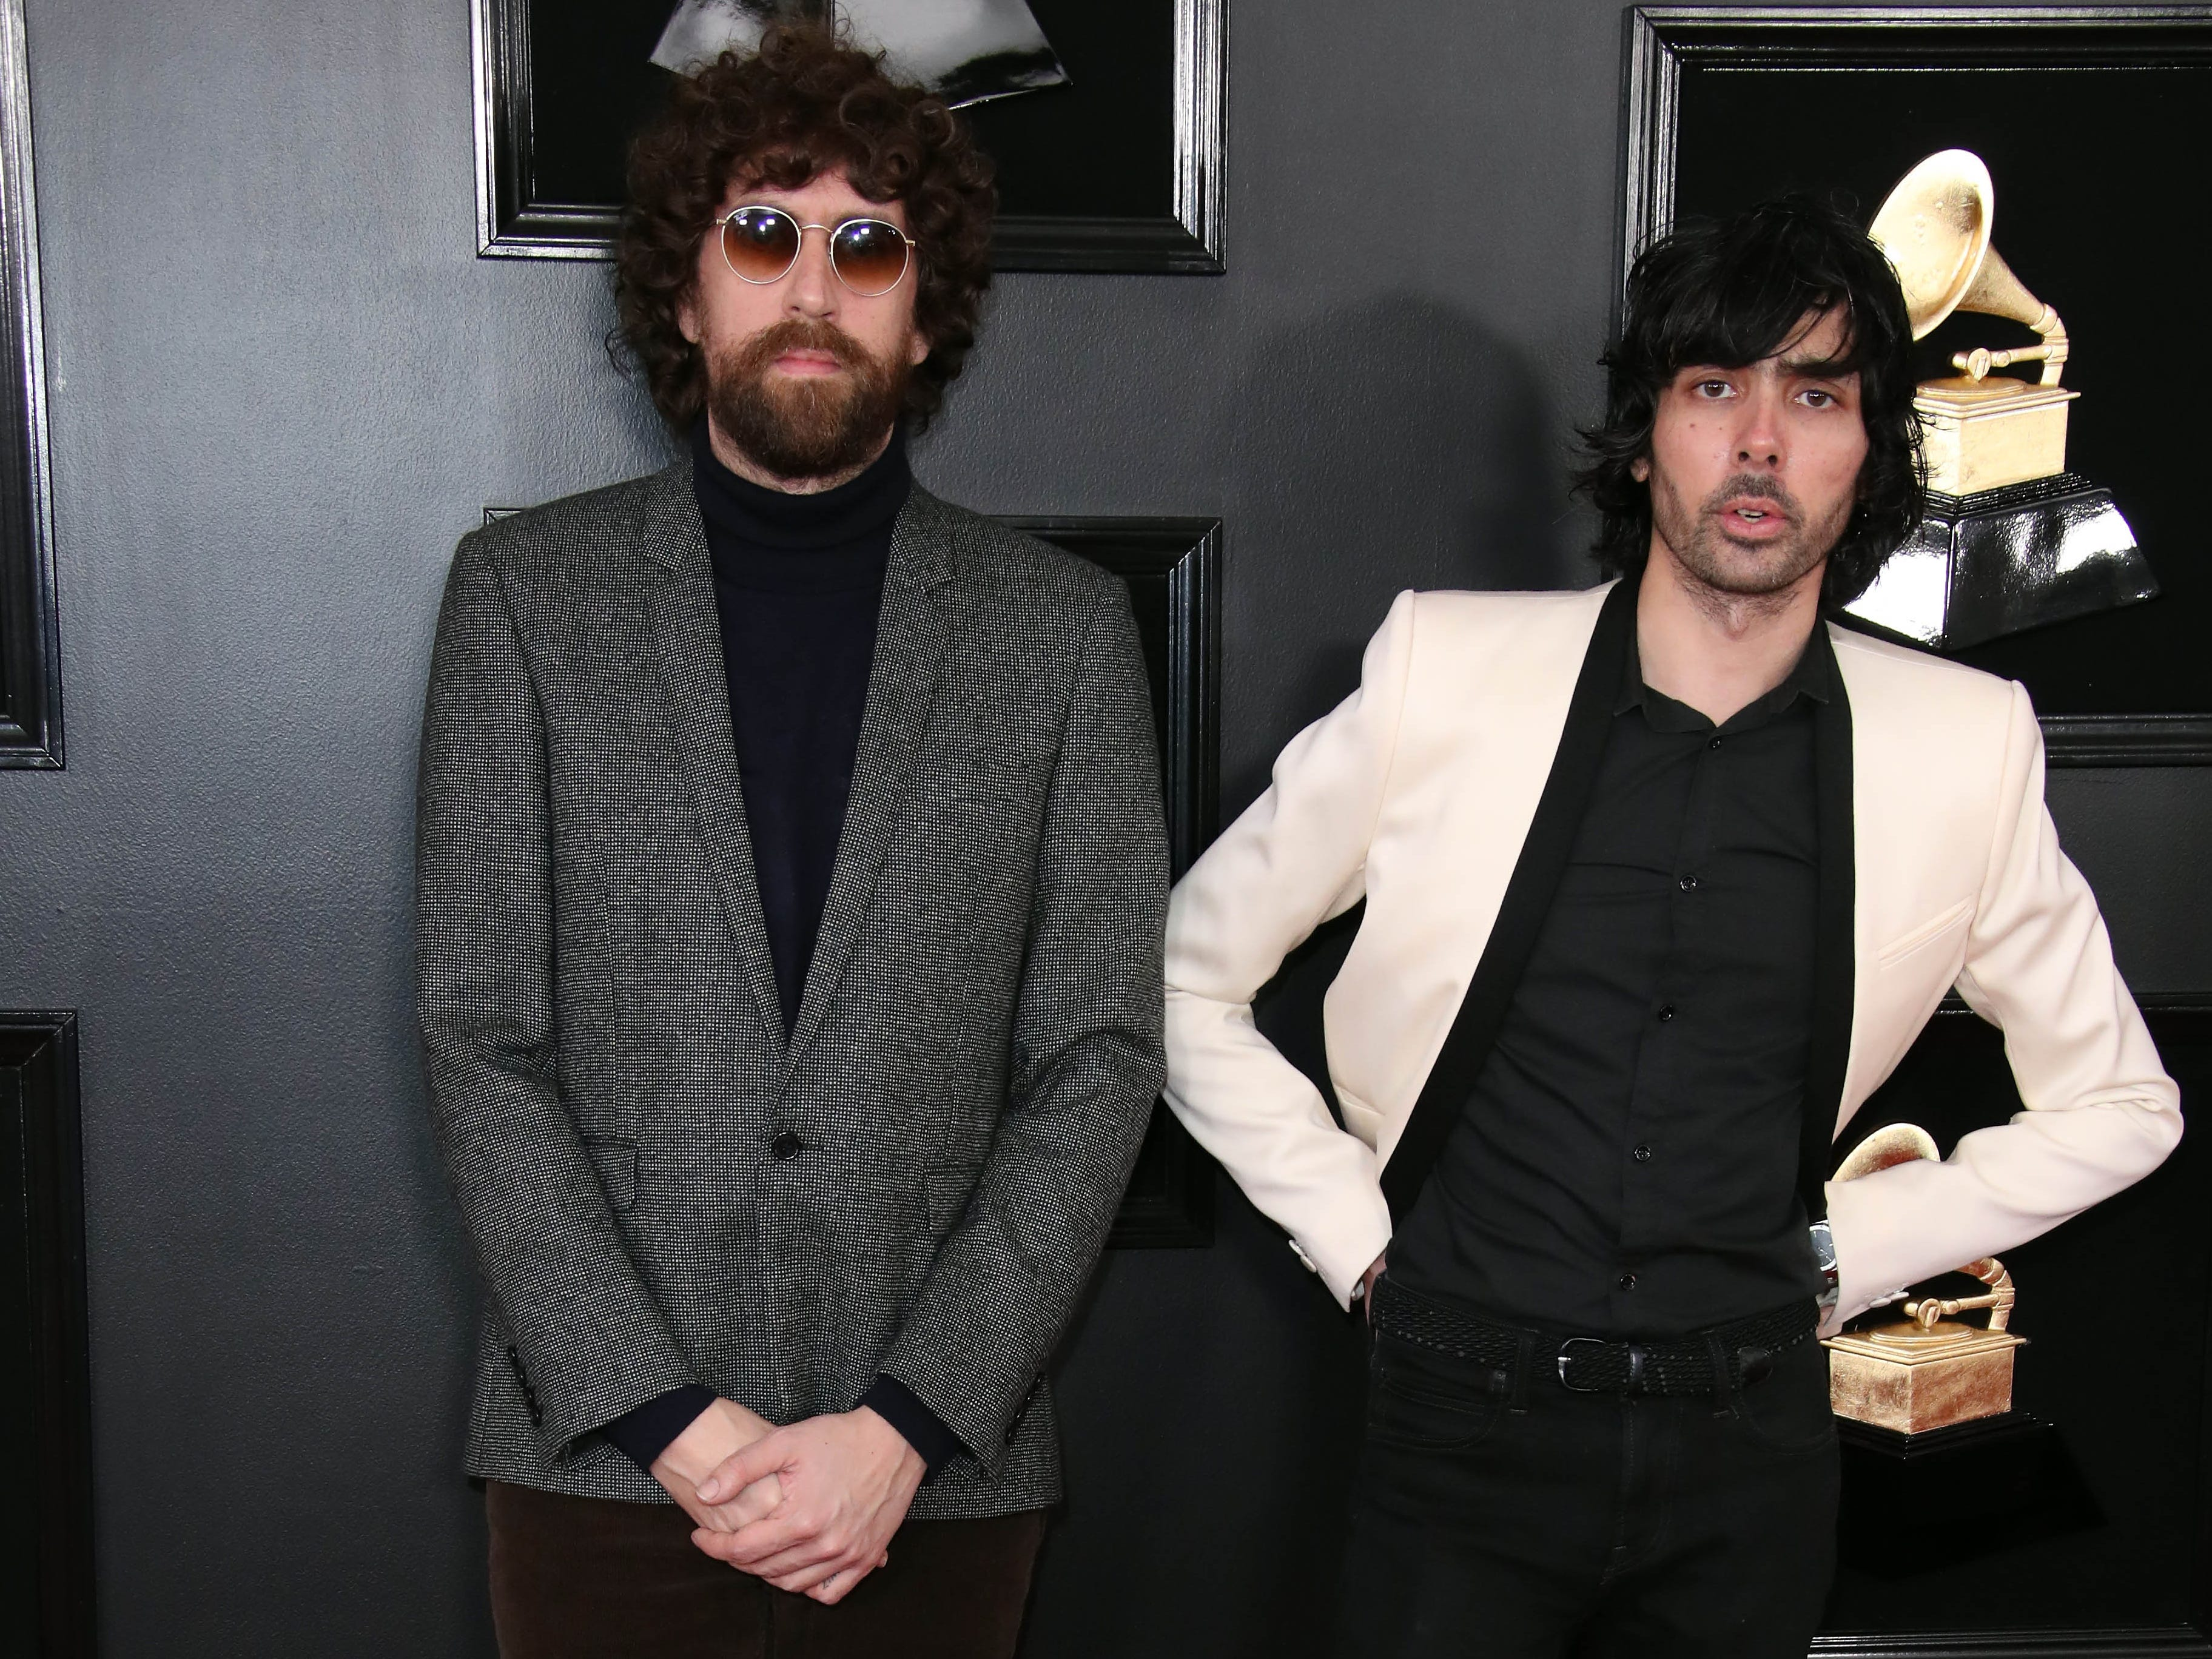 Justice attends the 61st Annual GRAMMY Awards on Feb. 10, 2019 at STAPLES Center in Los Angeles, Calif.